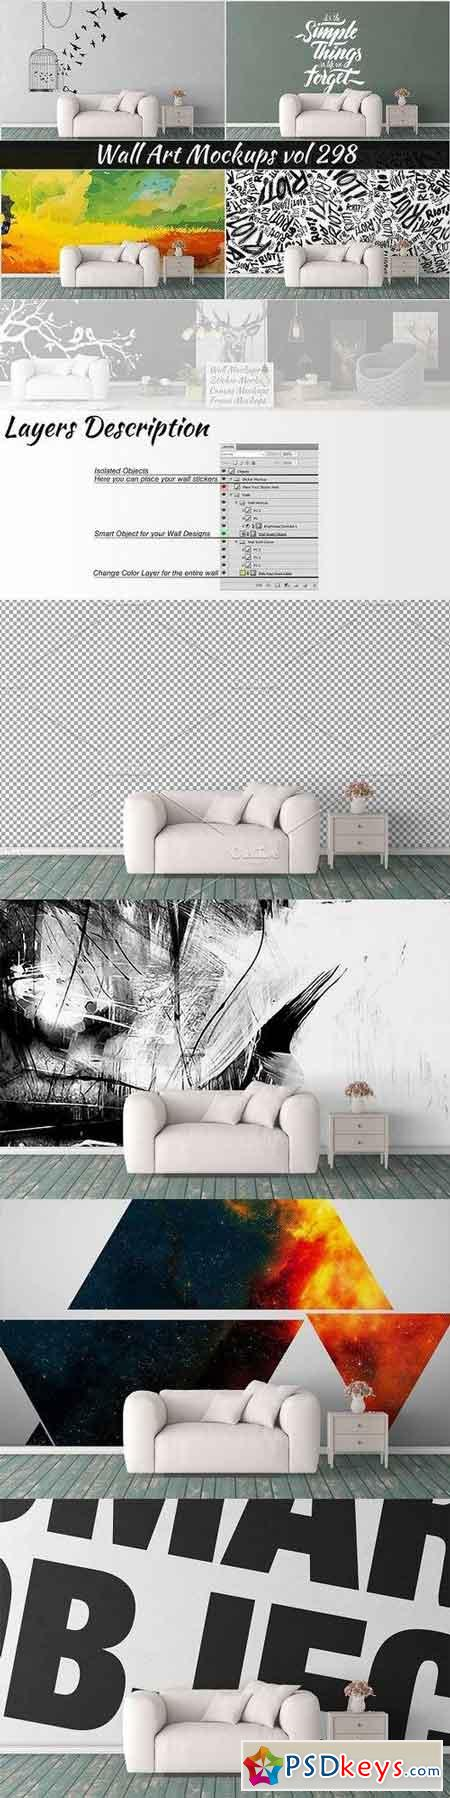 Wall Mockup - Sticker Mockup Vol 298 1150566